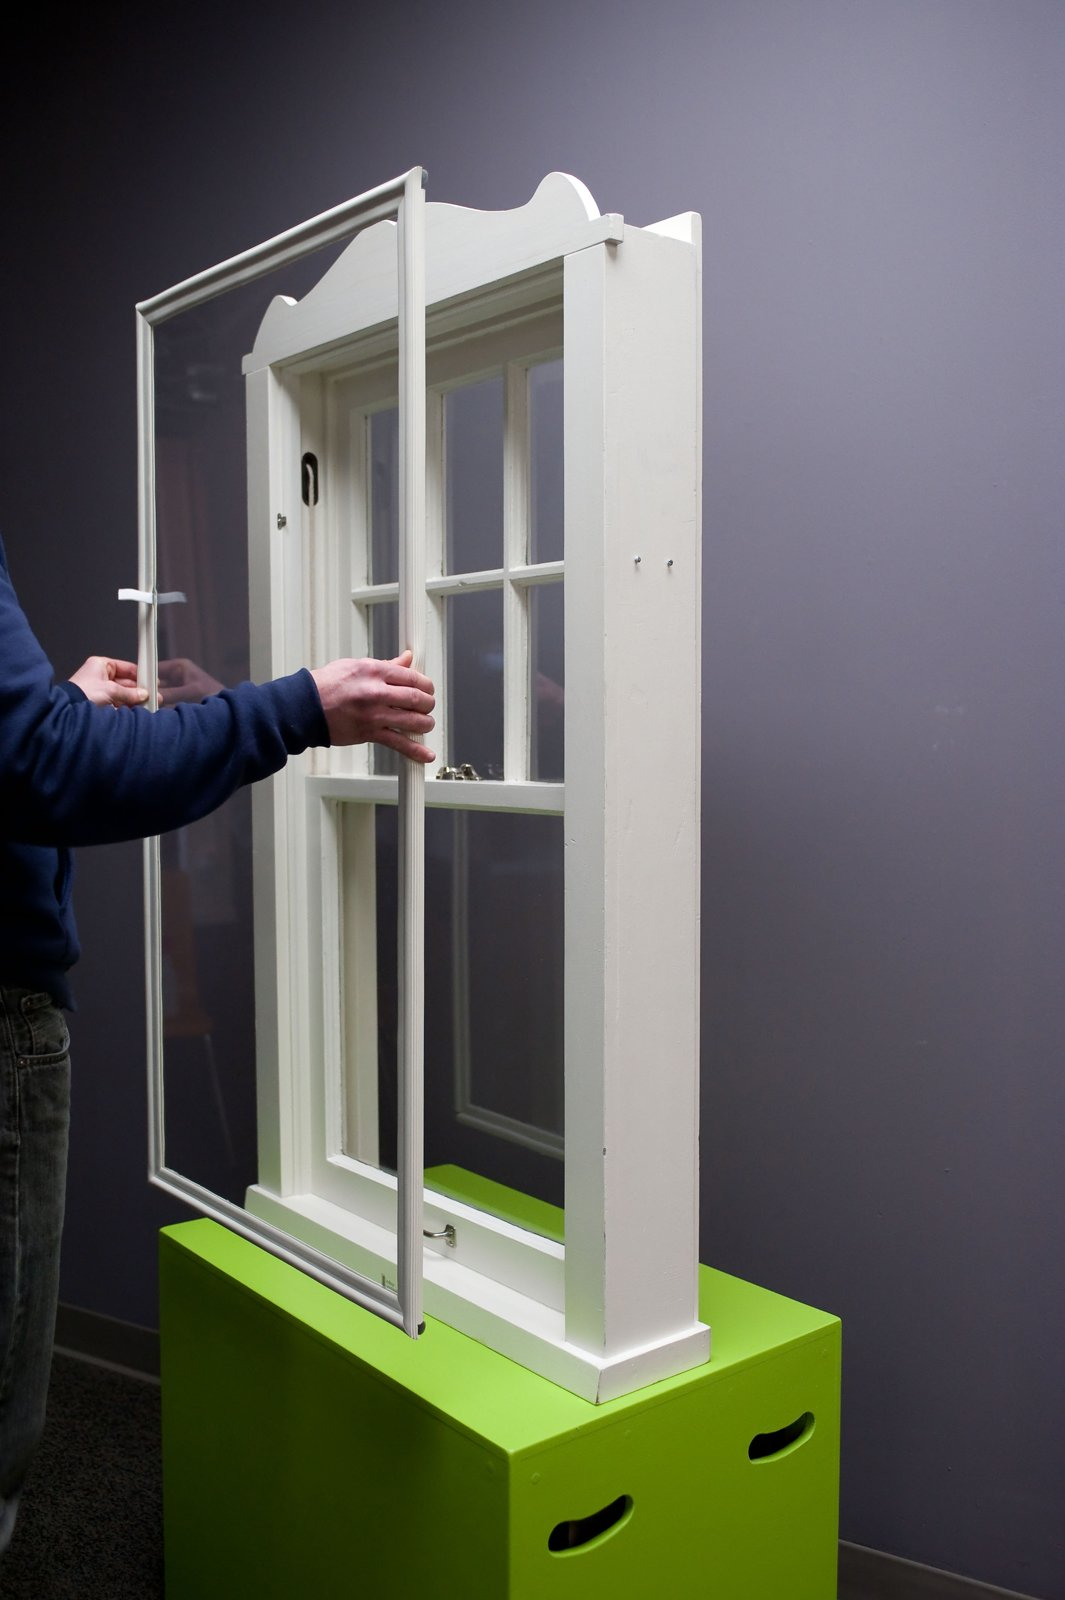 Indow Windows has a decidedly low-tech alternative for creating a more energy efficient home: custom window inserts that are just as efficient as double-pane windows but at one-fifth the cost, says founder Sam Pardue (a bit of trivia: he's also one of the Lensbaby cofounders). Essentially an acrylic panel wrapped in a compression tube, the window fits pops into the interior of an existing window, forming an air-tight seal.  What to See on the Last Day of Dwell on Design New York by Dwell from Highlights from Greenbuild 2012